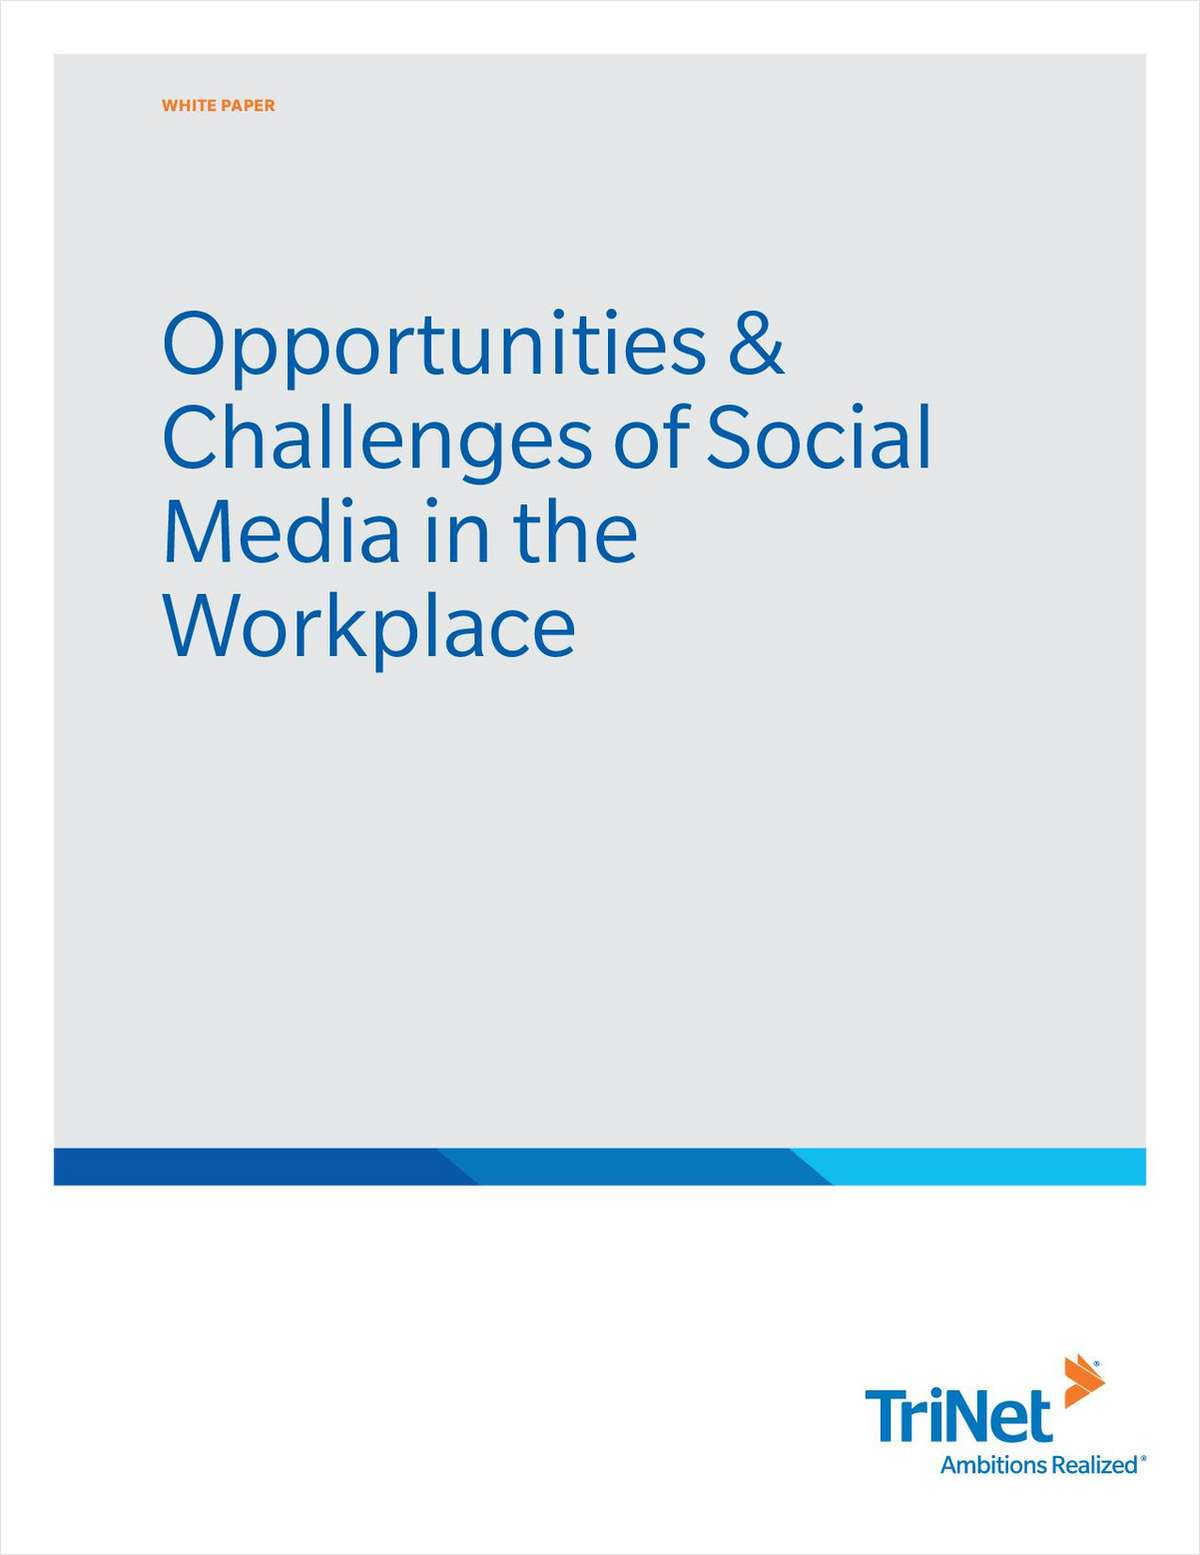 Opportunities & Challenges of Social Media in the Workplace